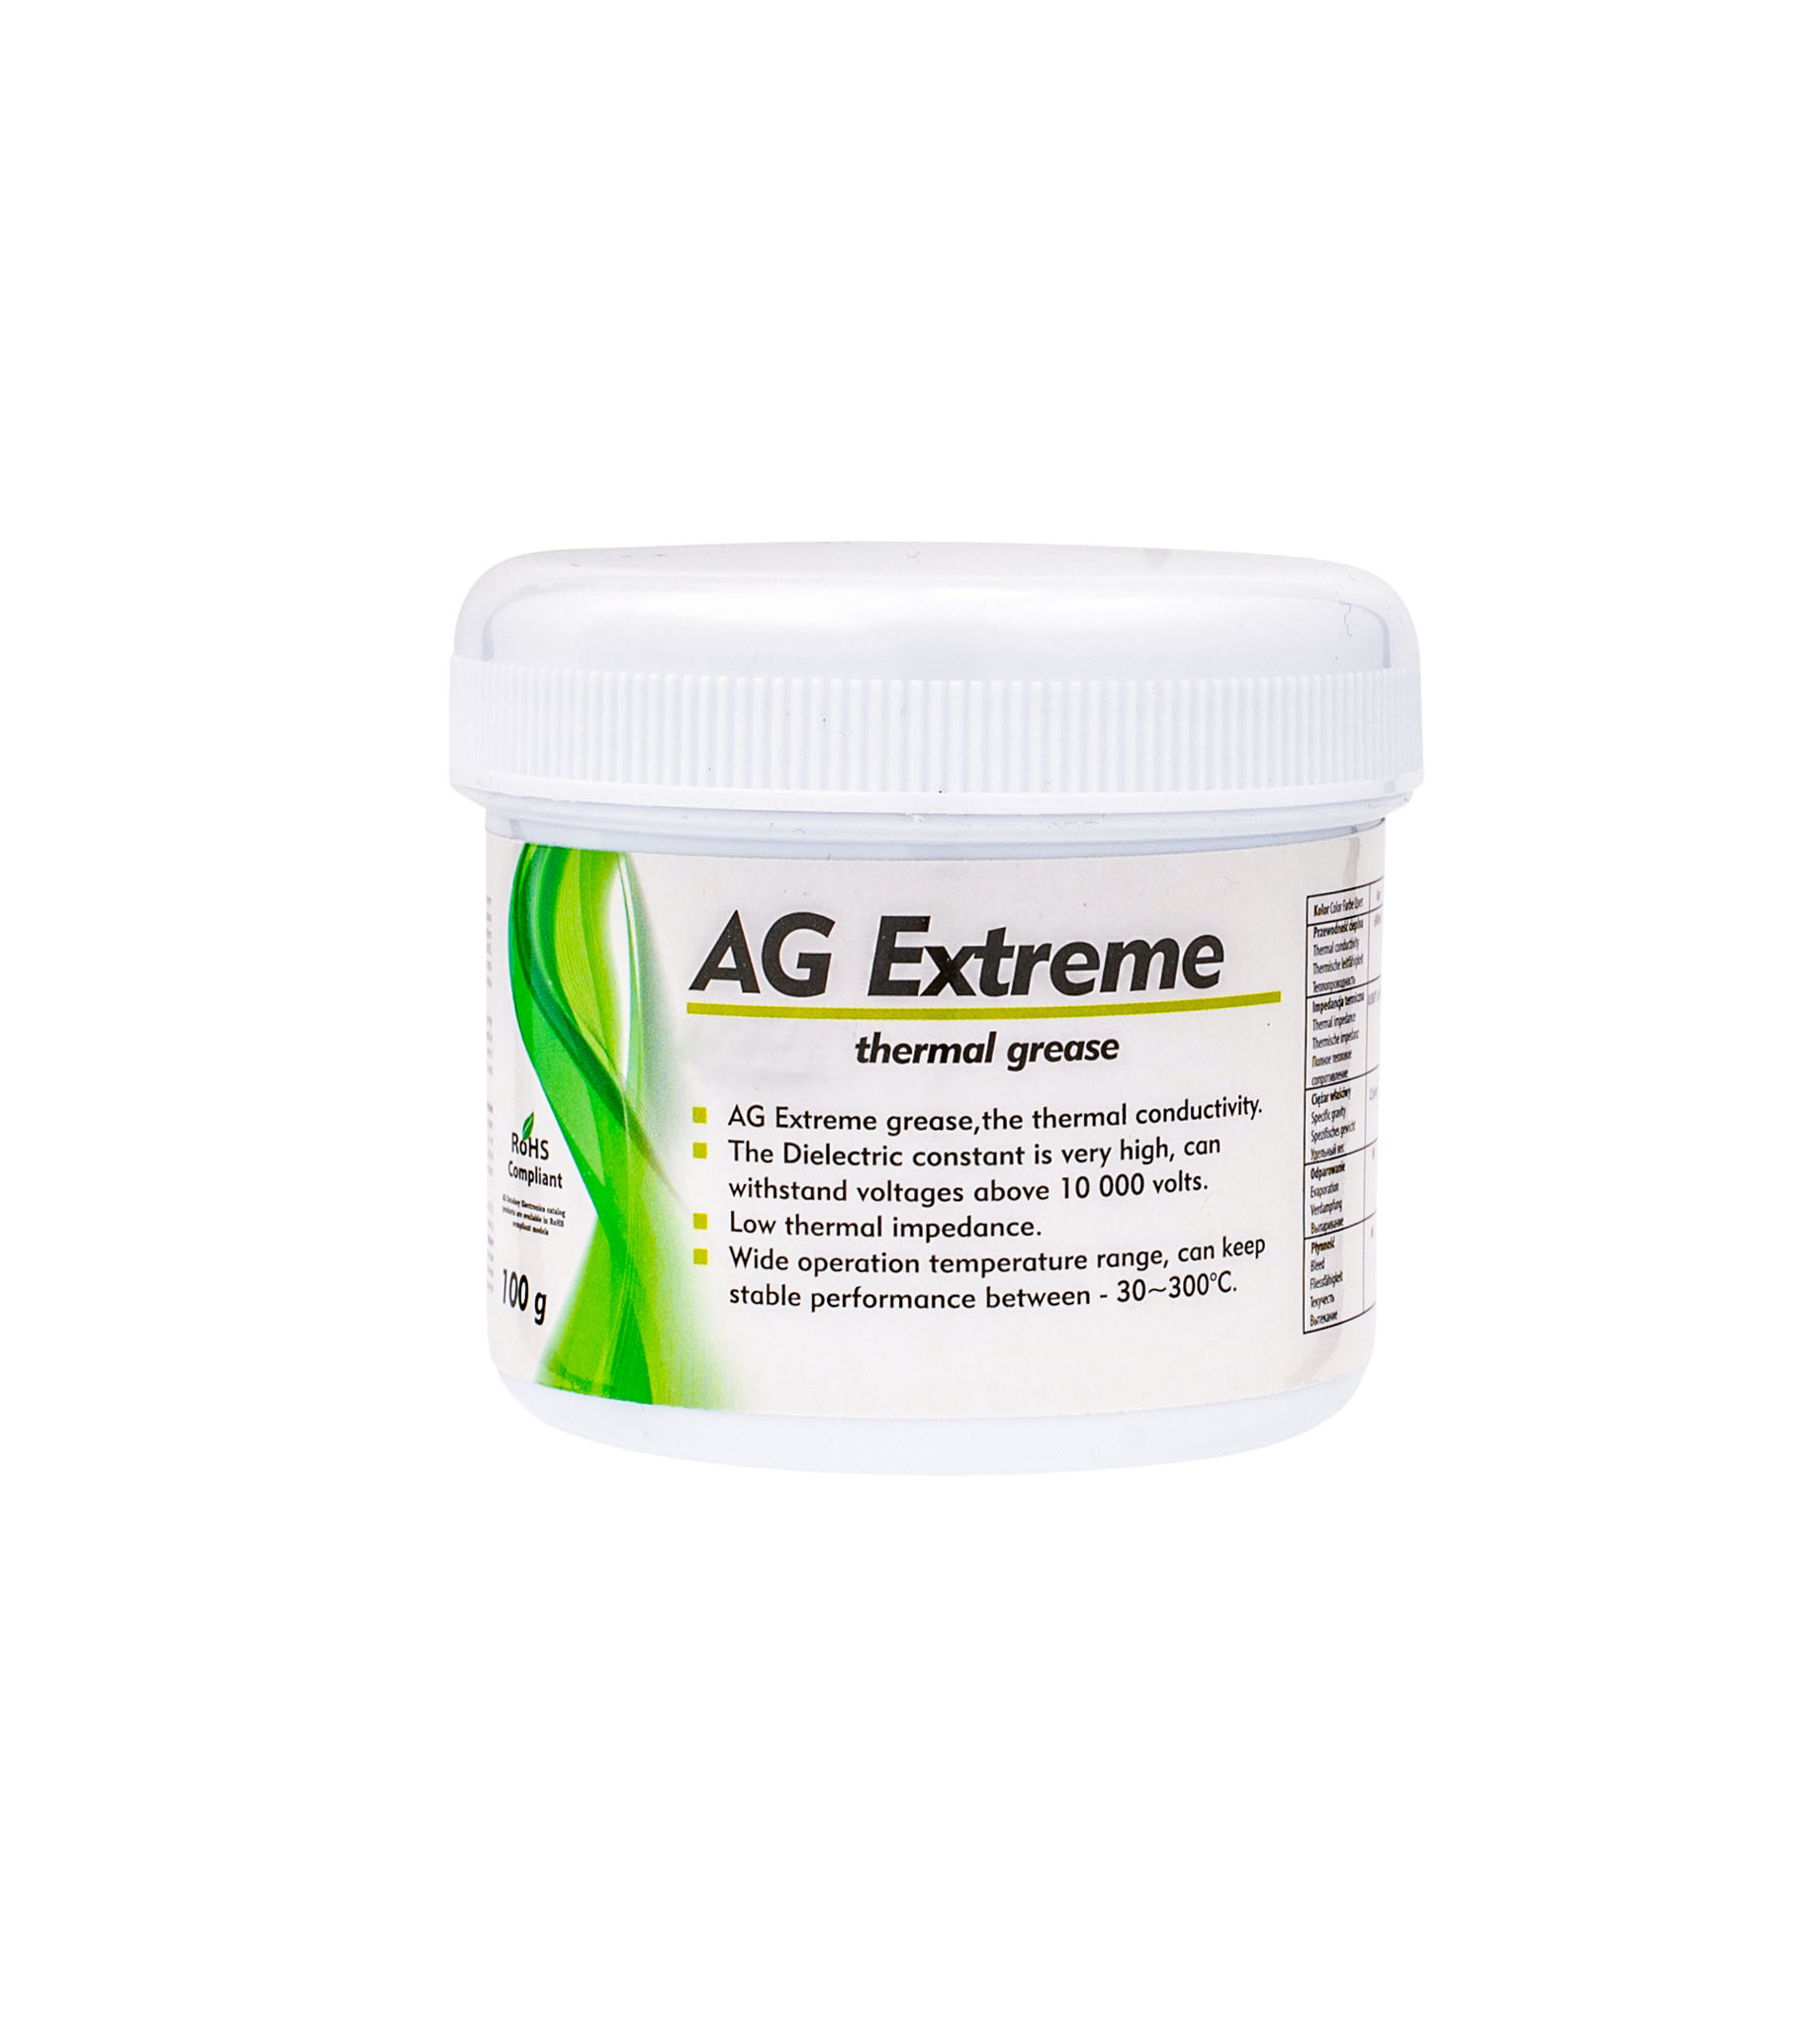 AG Extreme